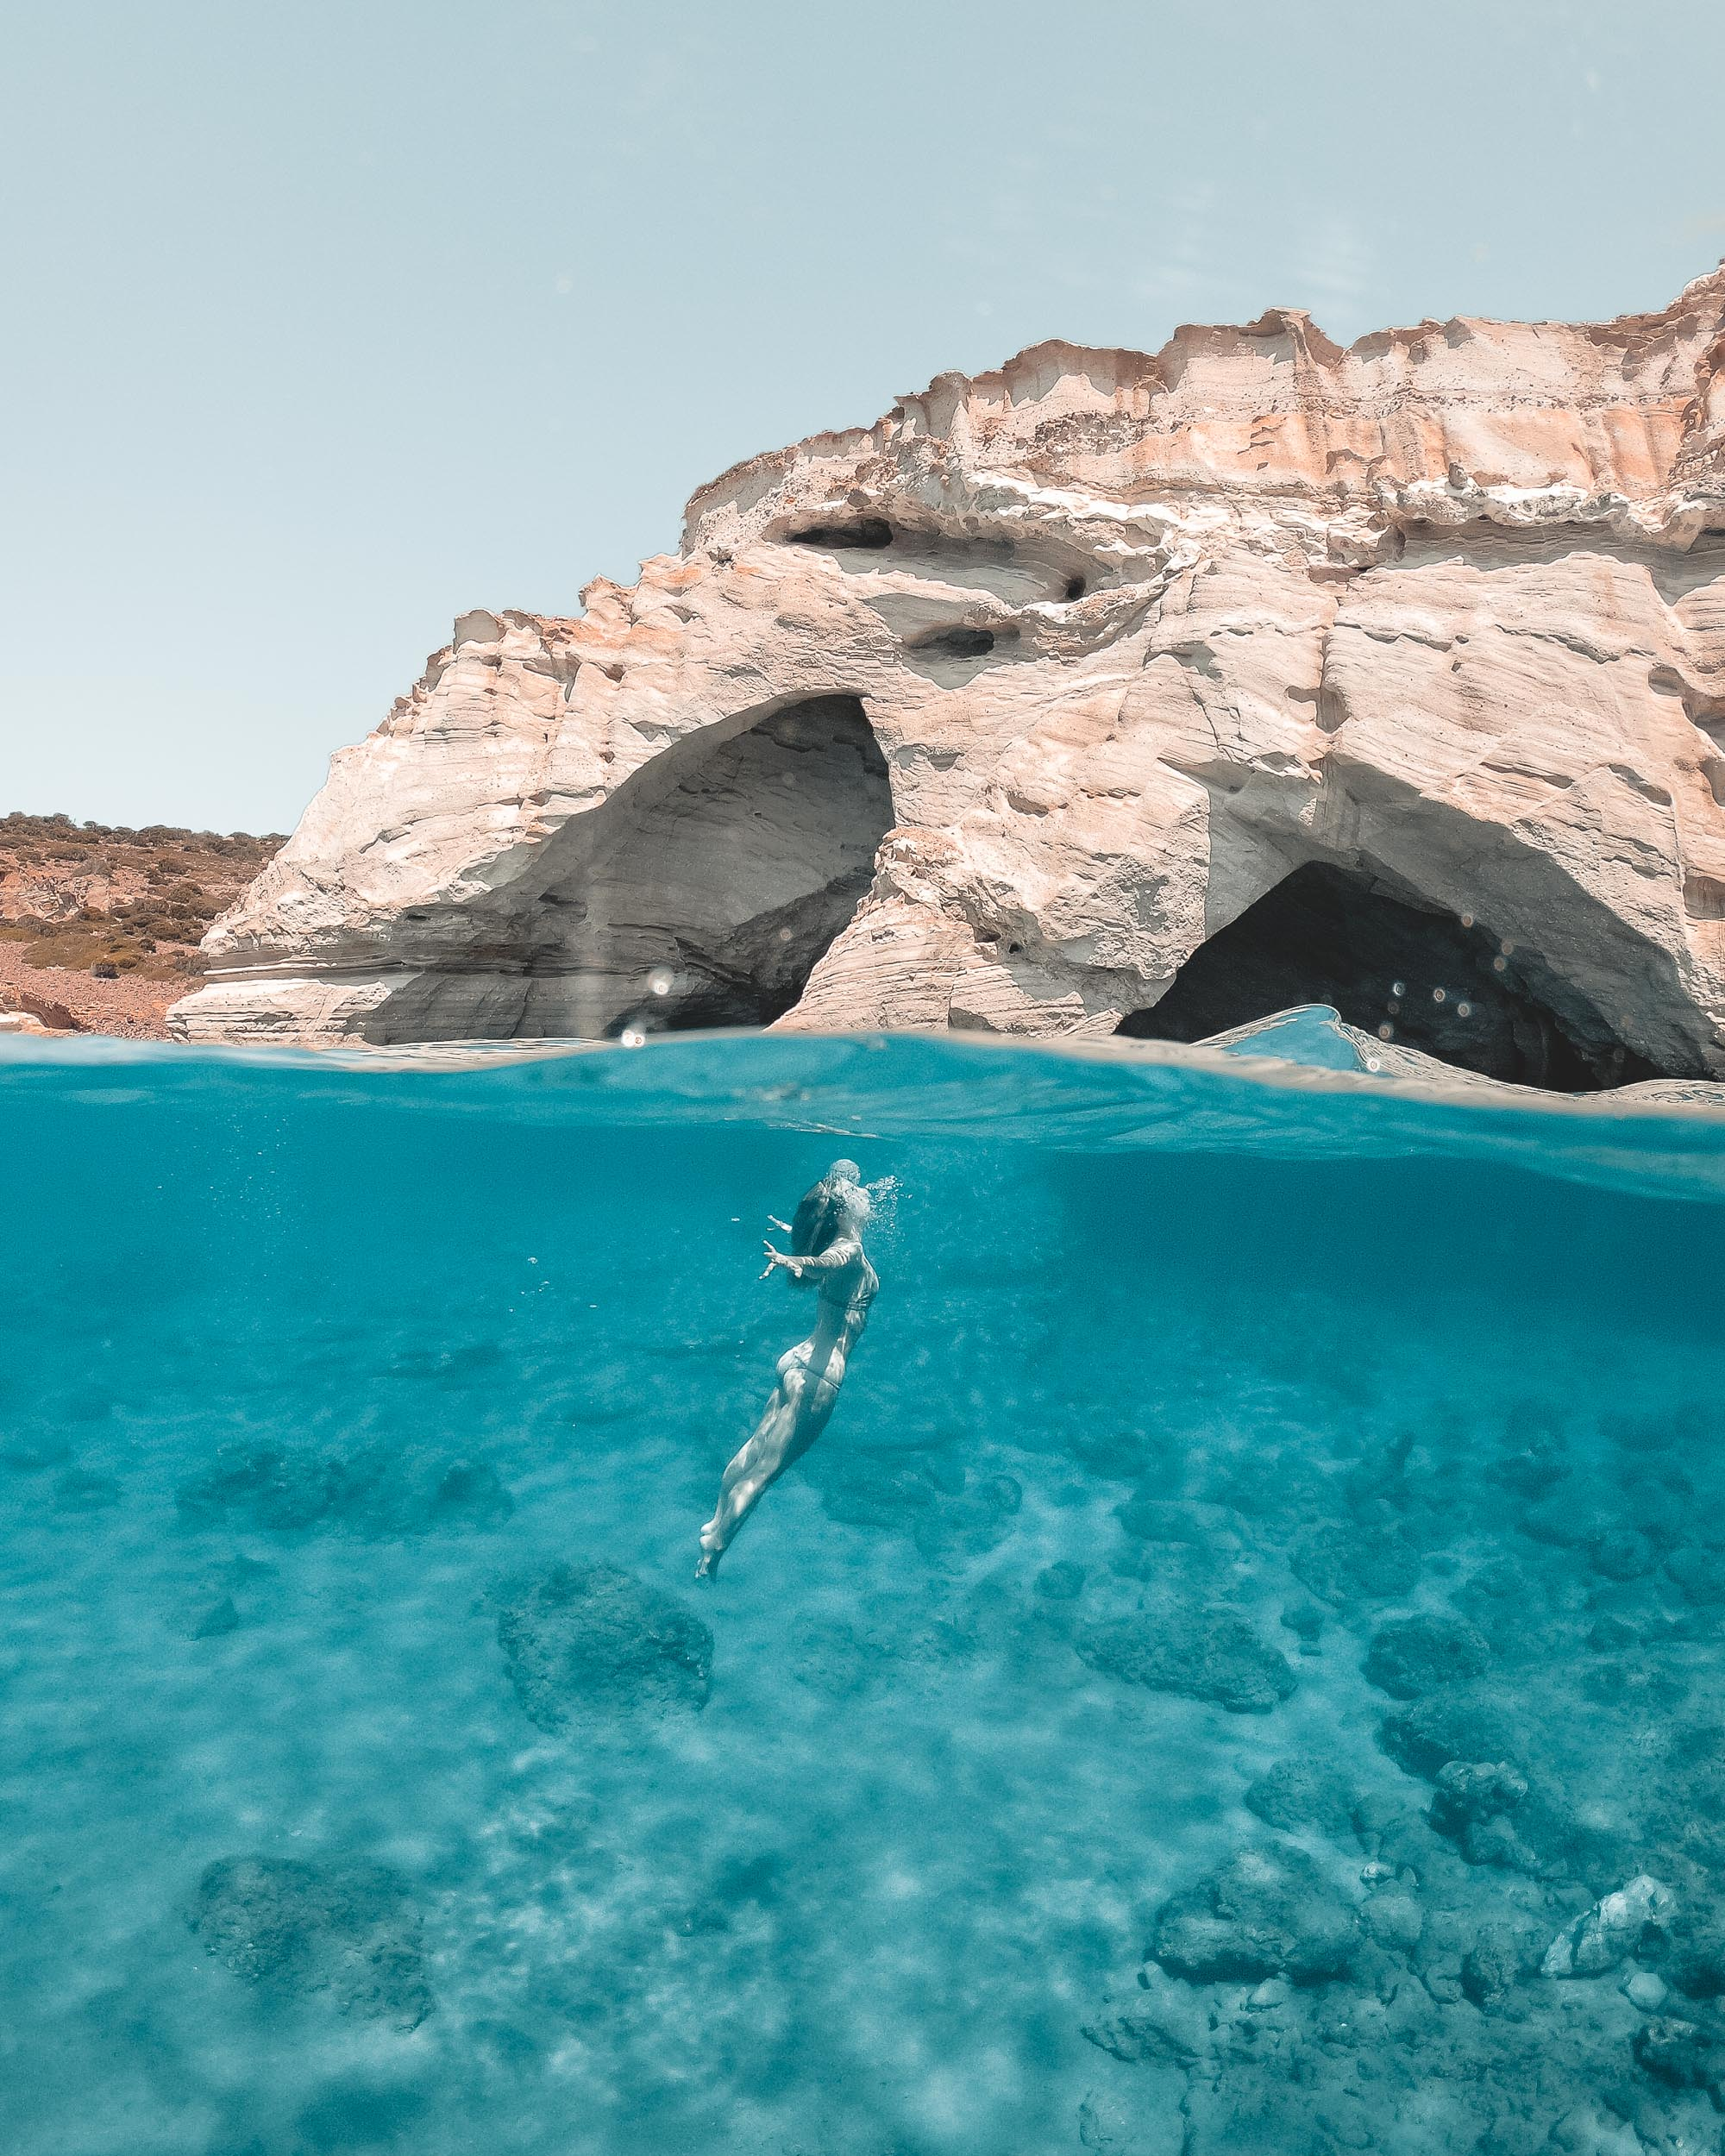 Kleftiko caves in Milos, Greece via @finduslost